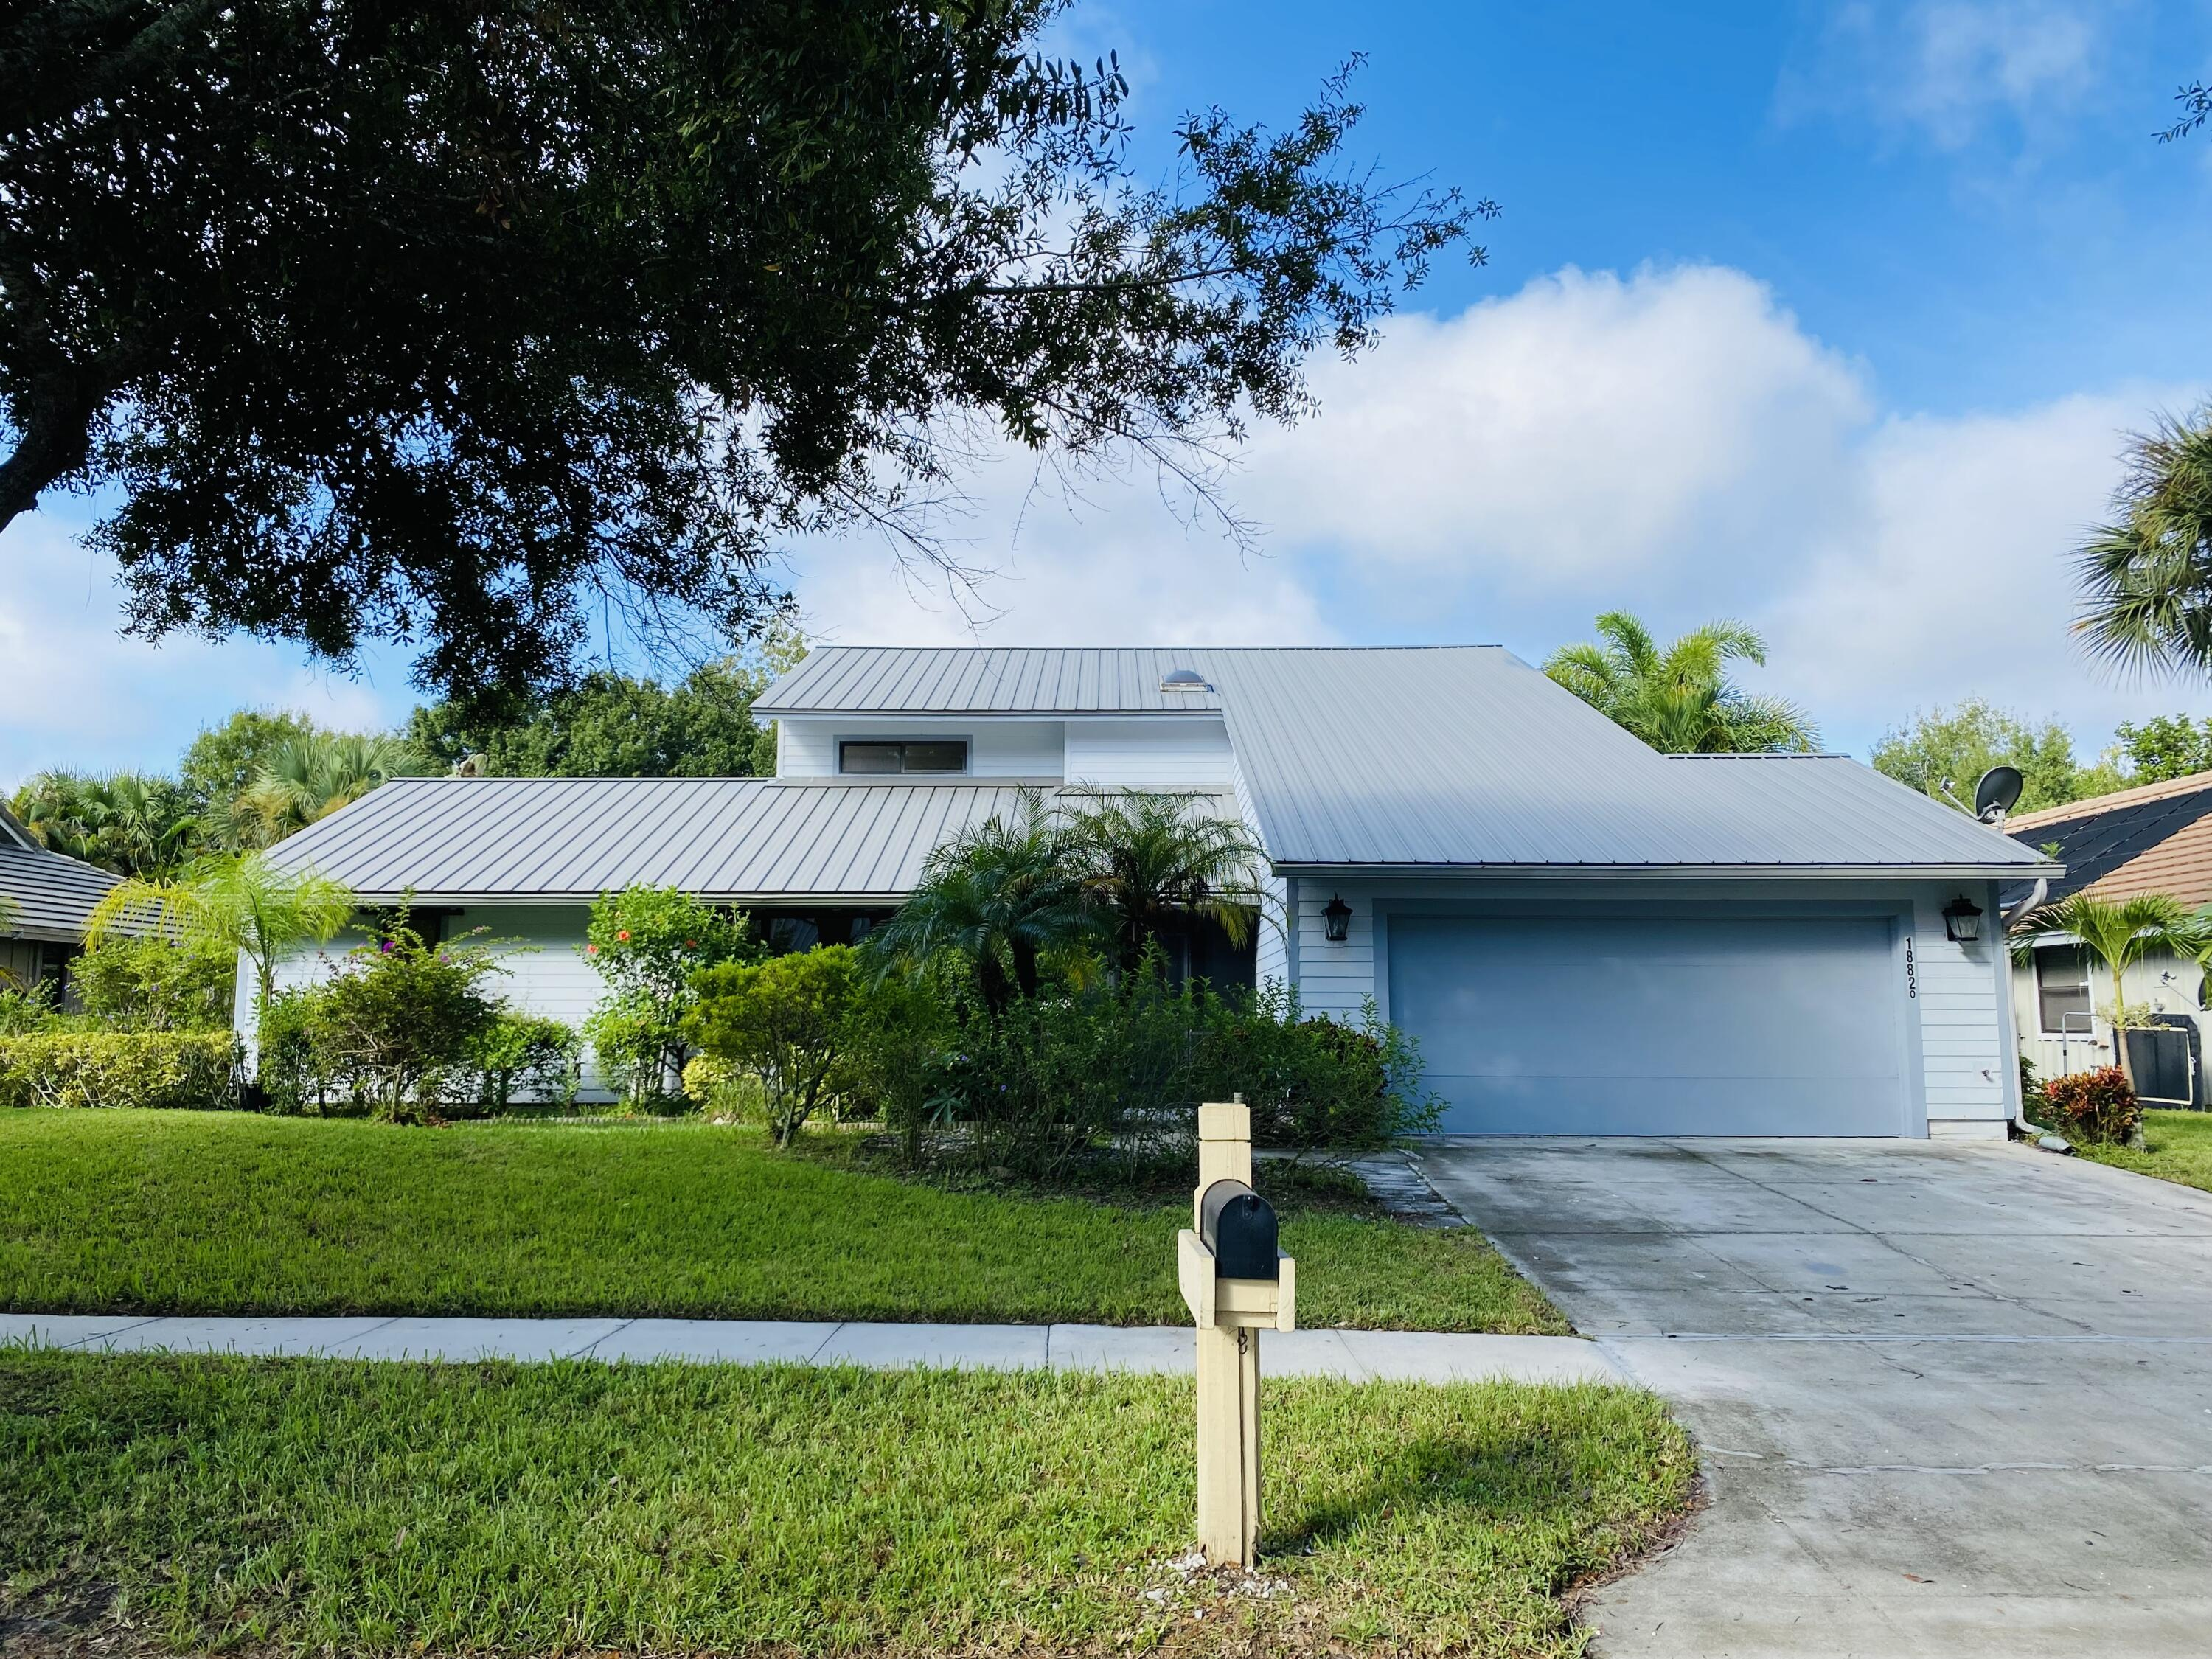 This ''As-Is'' home is ready to welcome its new homeowner/s. Run to this great opportunity to live in one of the best neighborhoods in Jupiter with A rated schools. This home needs a little love but she is sure to be the shining gem on the block. Schedule a showing today on this great Shores opportunity before it is gone.